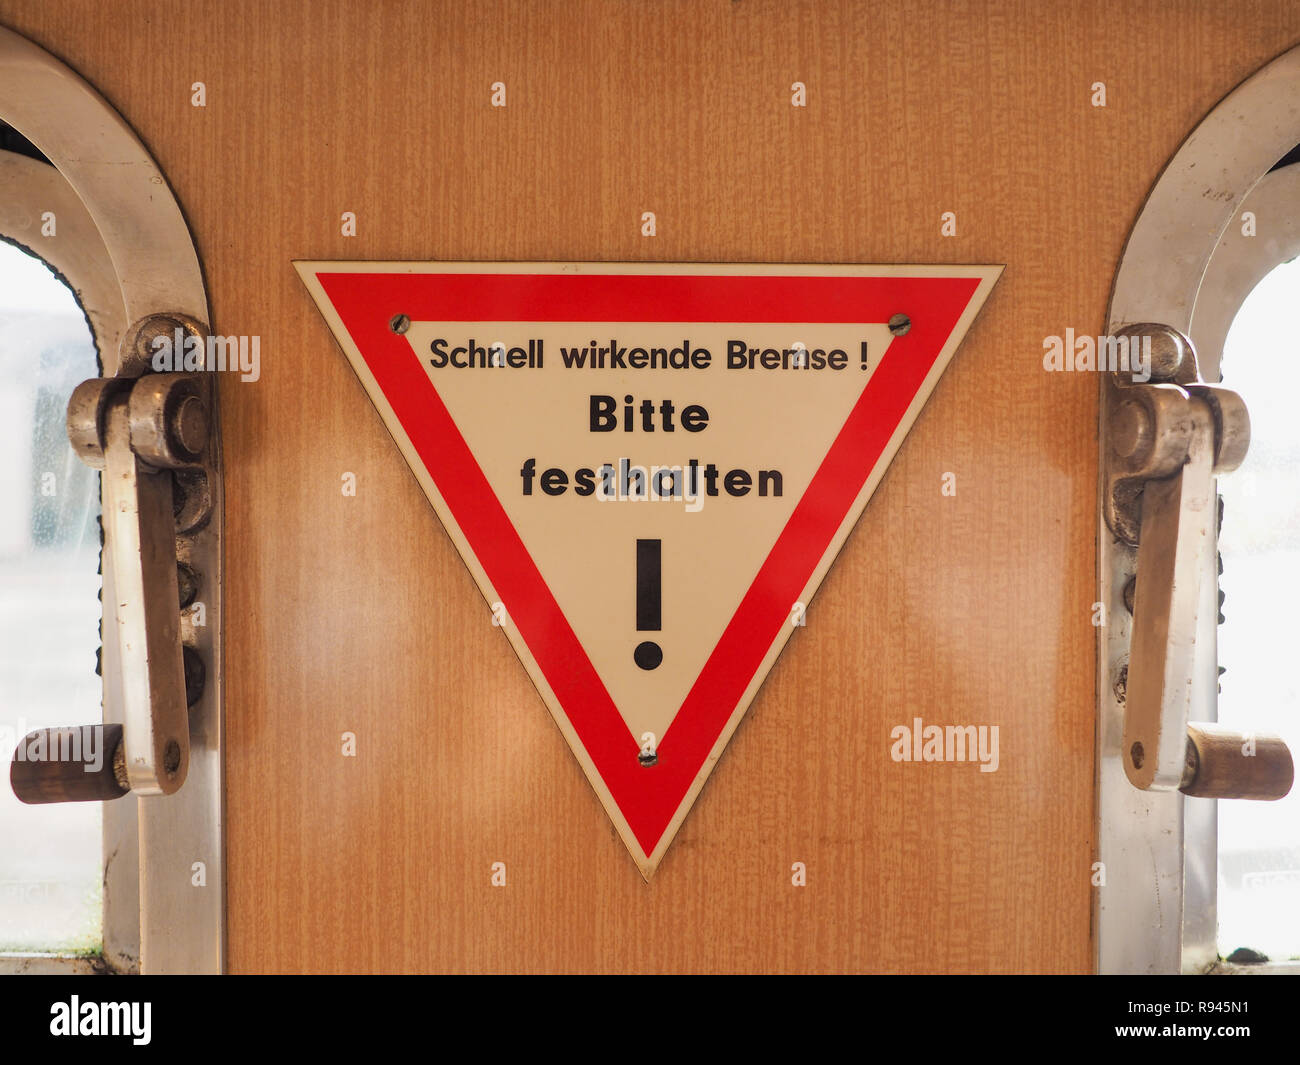 Schnell wirkende Bremse, Bitte festhalten (meaning Quick-acting brake, please hold tight) sign on vintage German tram - Stock Image